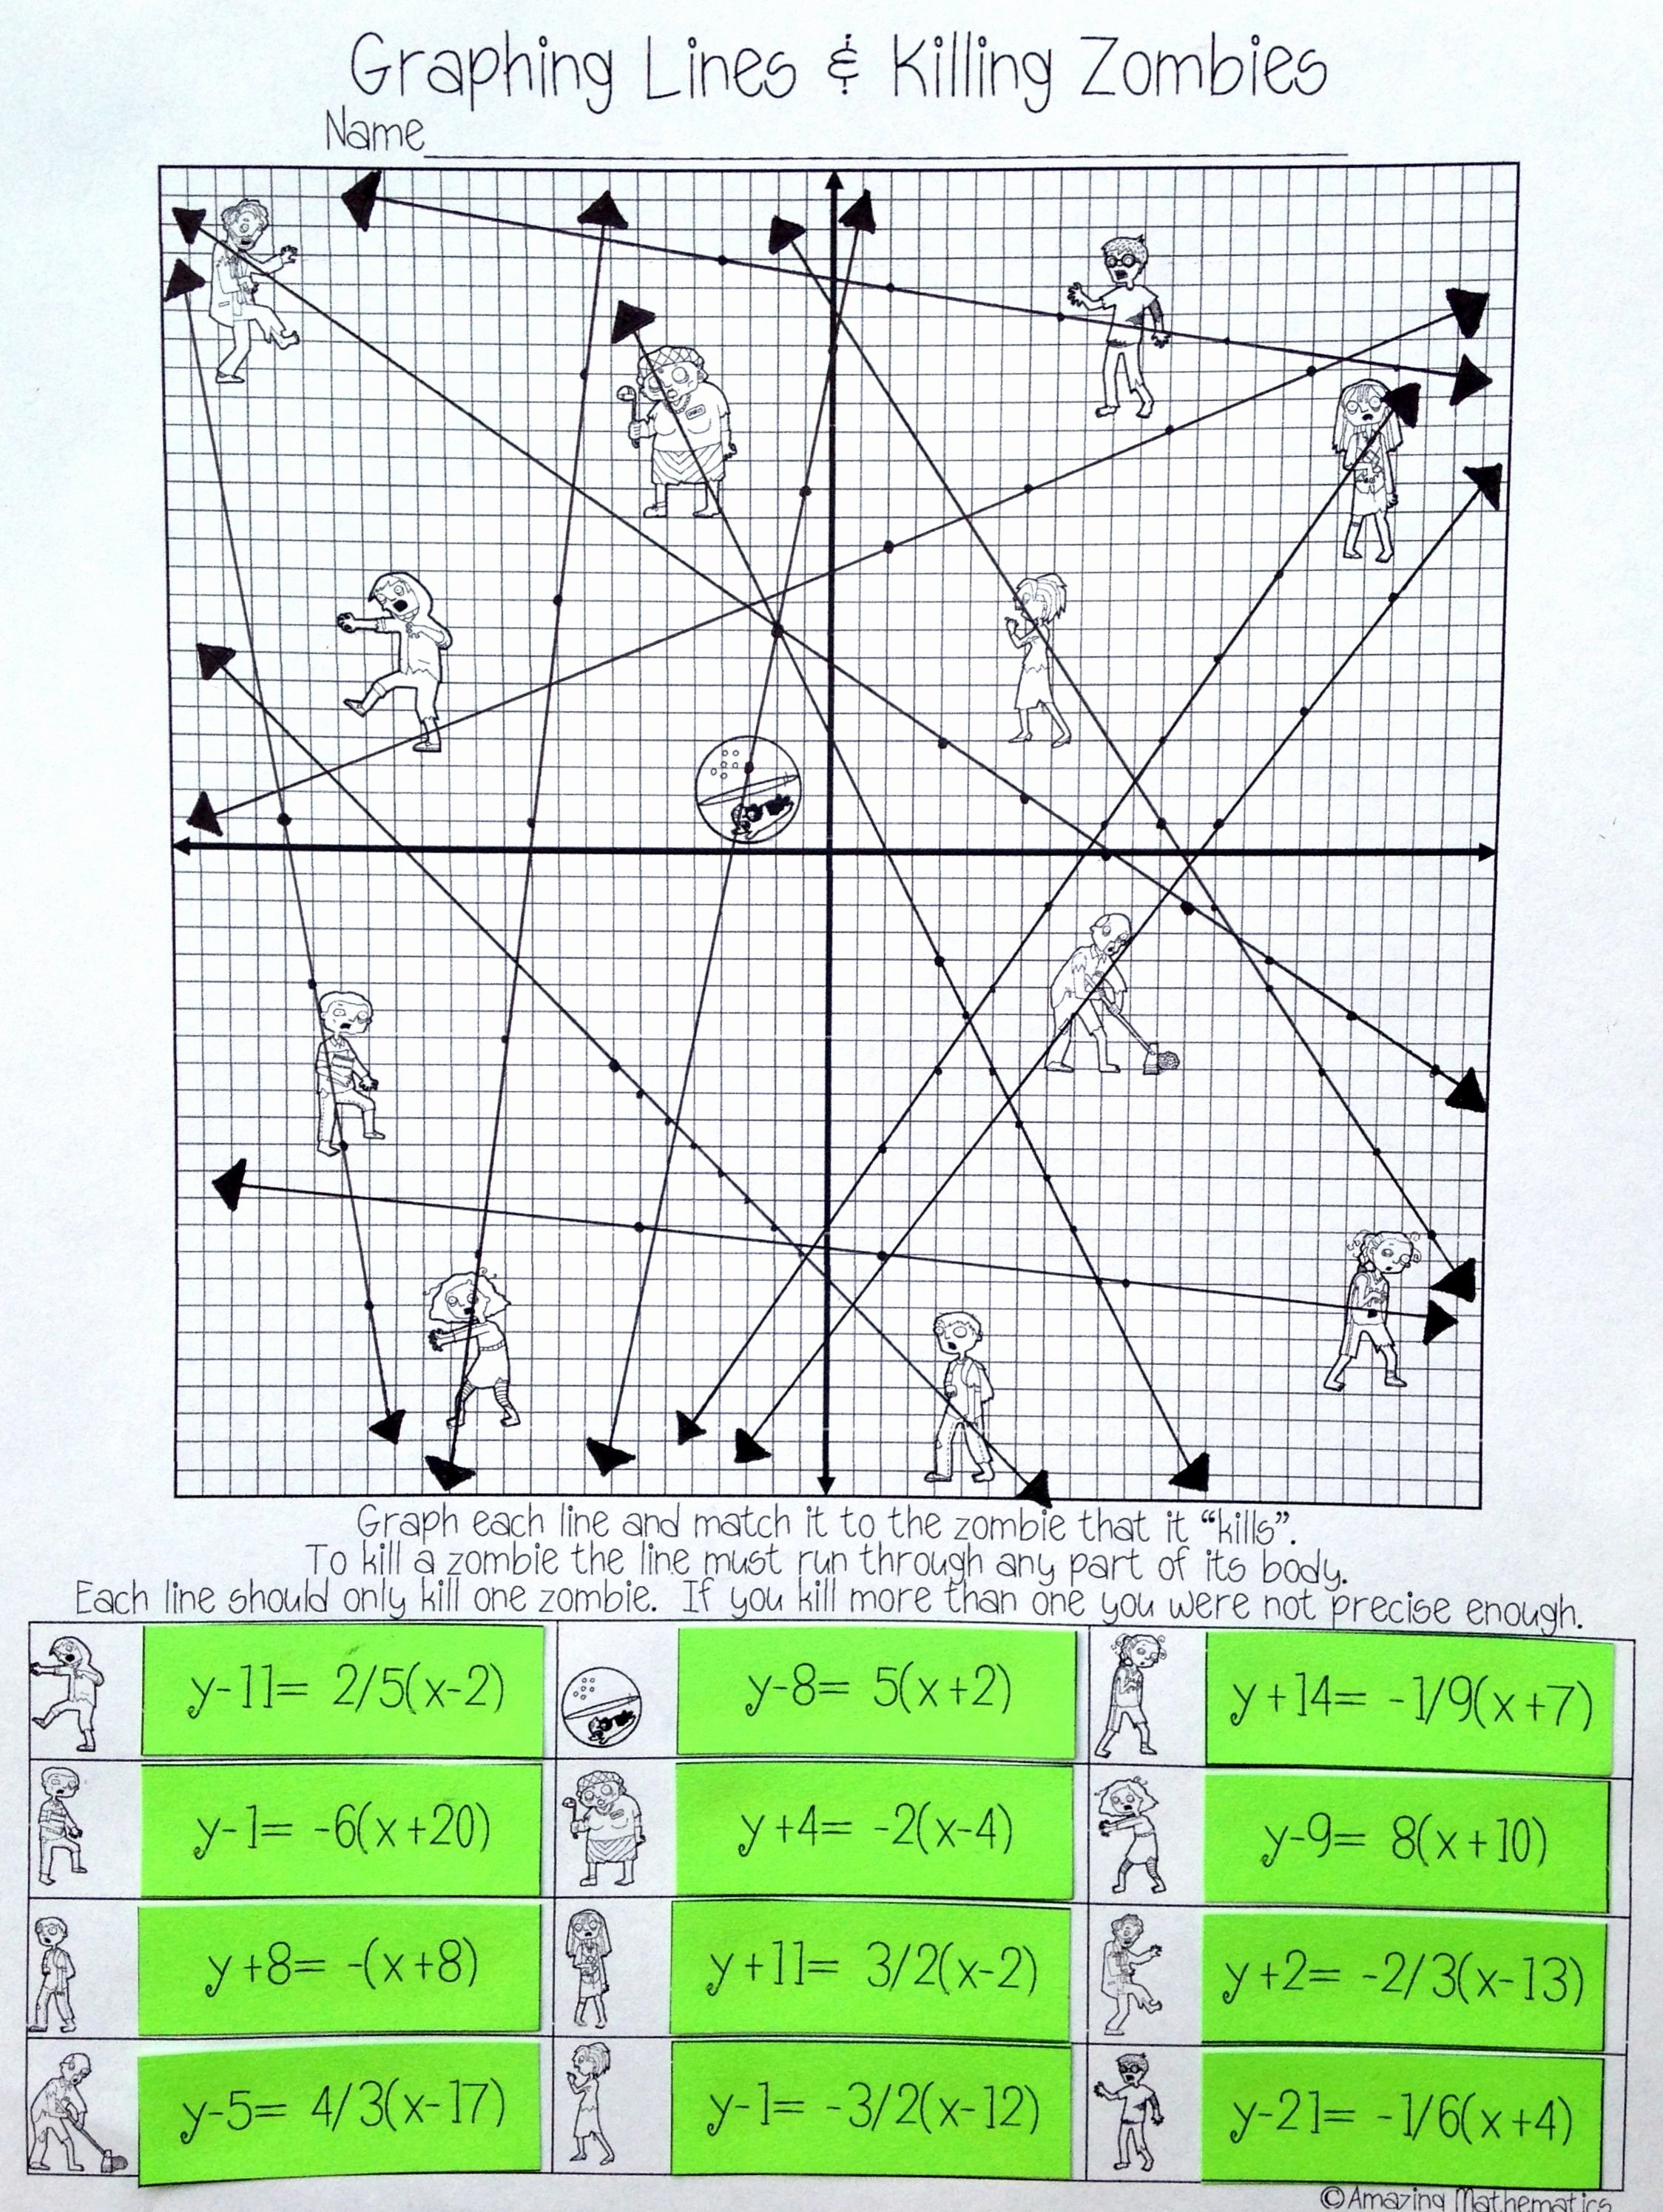 Point Slope form Worksheet Awesome Graphing Lines & Zombies Point Slope form